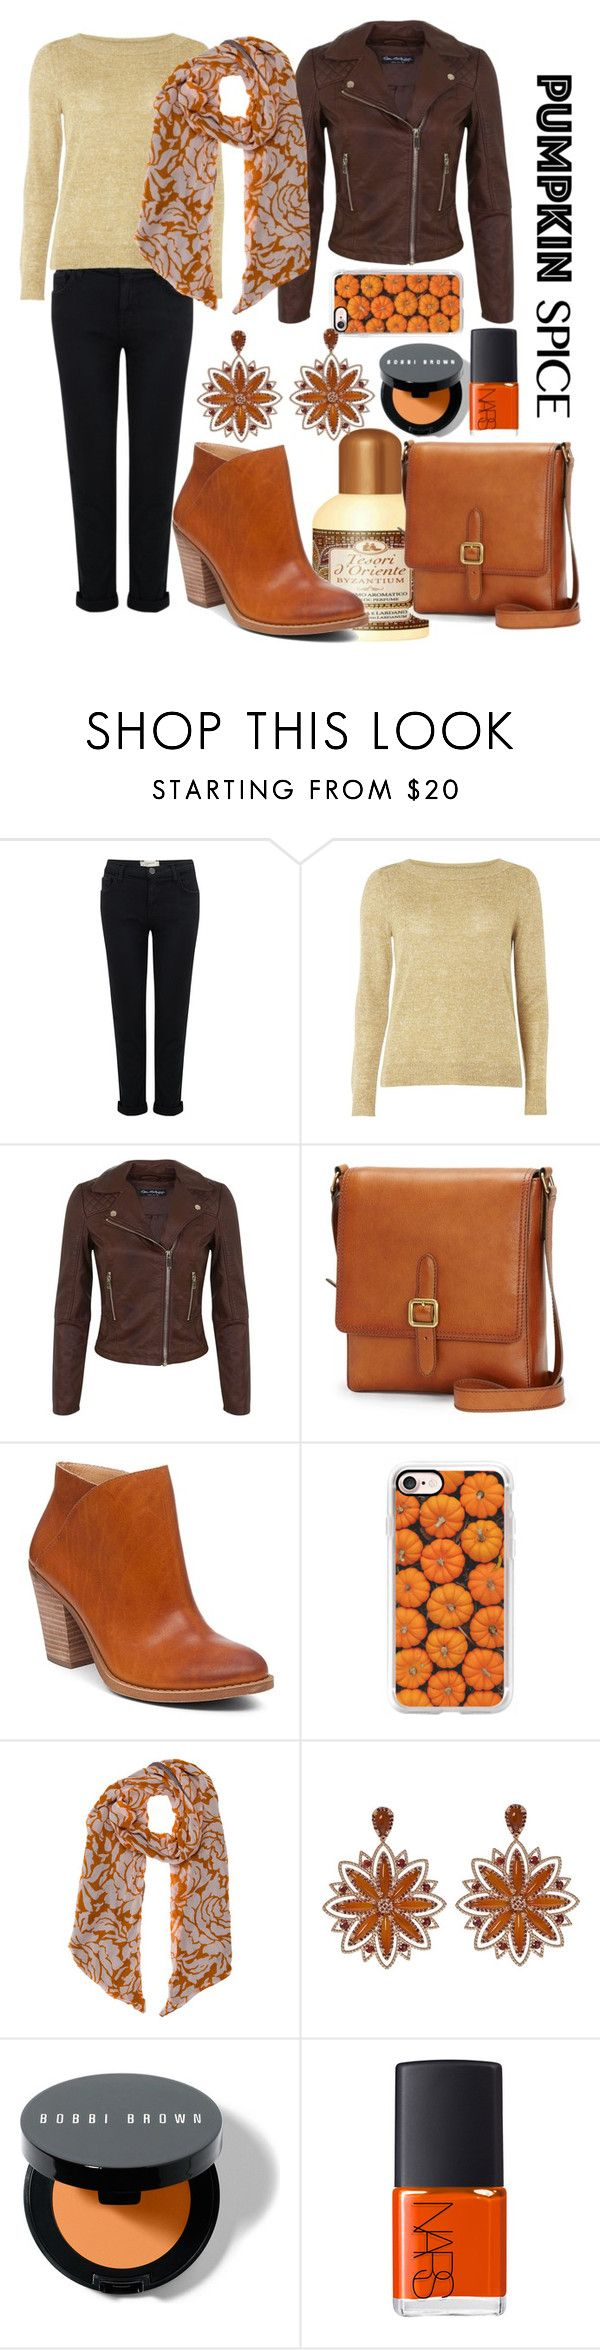 """Untitled #747"" by confusioninme ❤ liked on Polyvore featuring Current/Elliott, mel, Miss Selfridge, Frye, Lucky Brand, Casetify, Yigal AzrouÃ«l, Carla Amorim, Bobbi Brown Cosmetics and NARS Cosmetics"